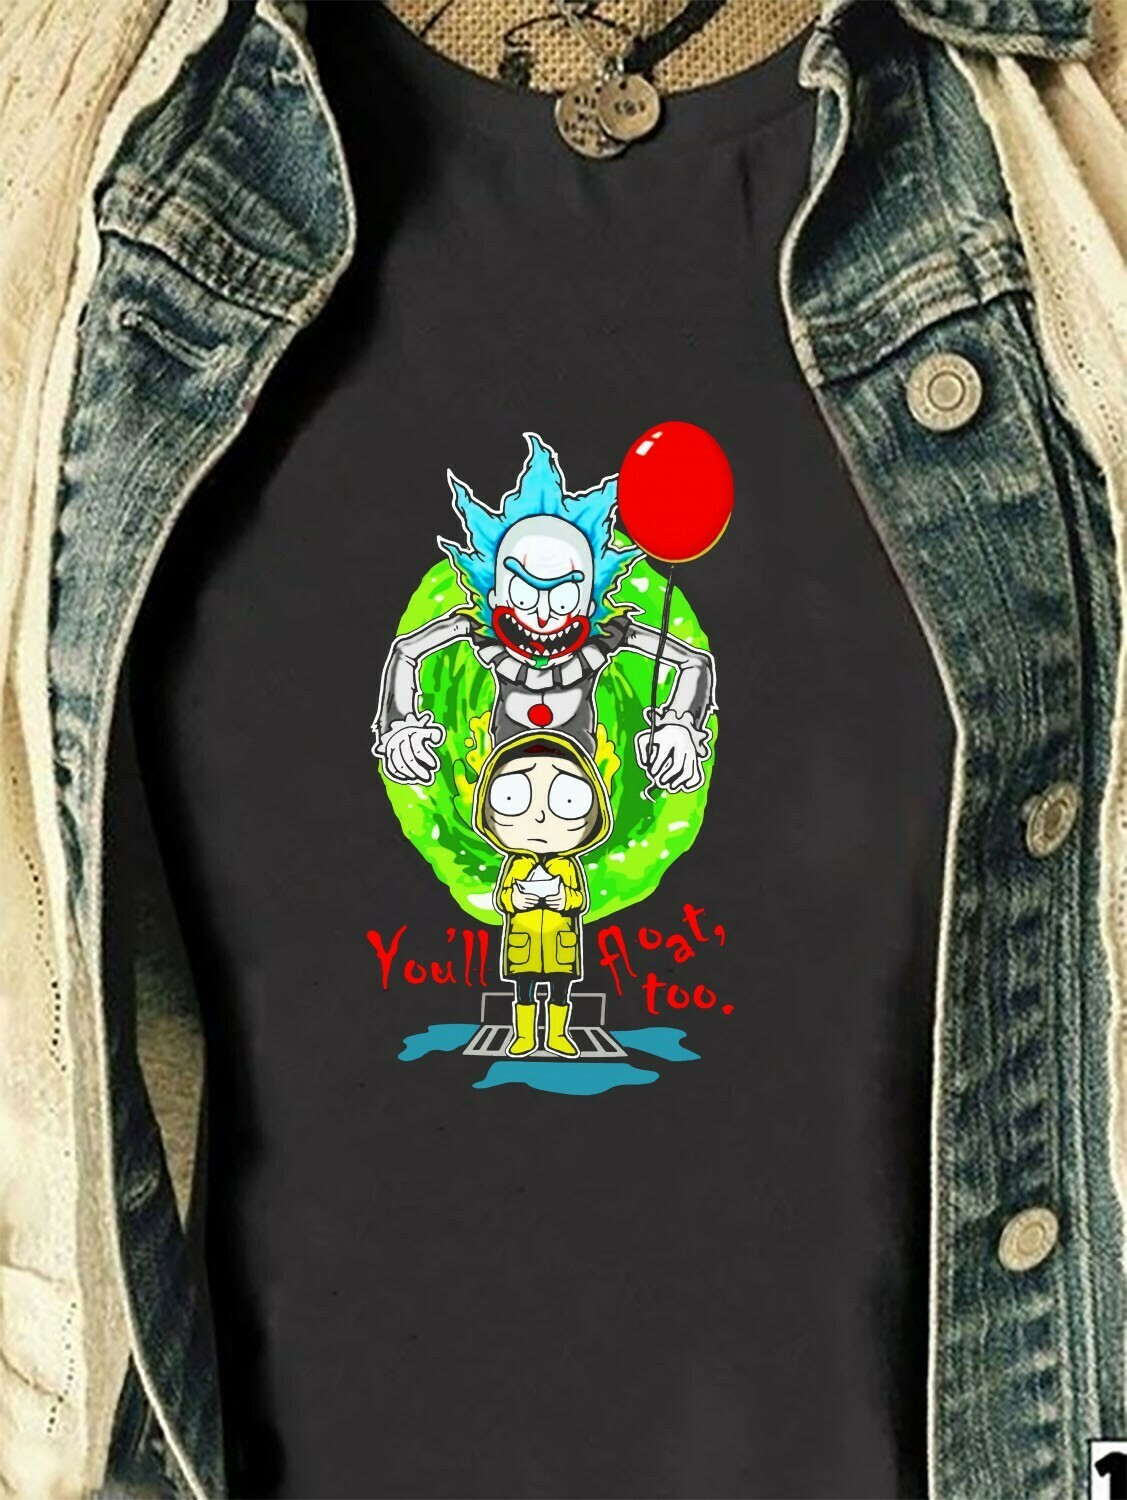 Funny Rick and Morty Cosplay Pennywise IT You'll Float Too Halloween Squad We All Float Down Here Squad Villains Movie Mashup T-Shirt Long Sleeve Sweatshirt Hoodie Jolly Family Gifts